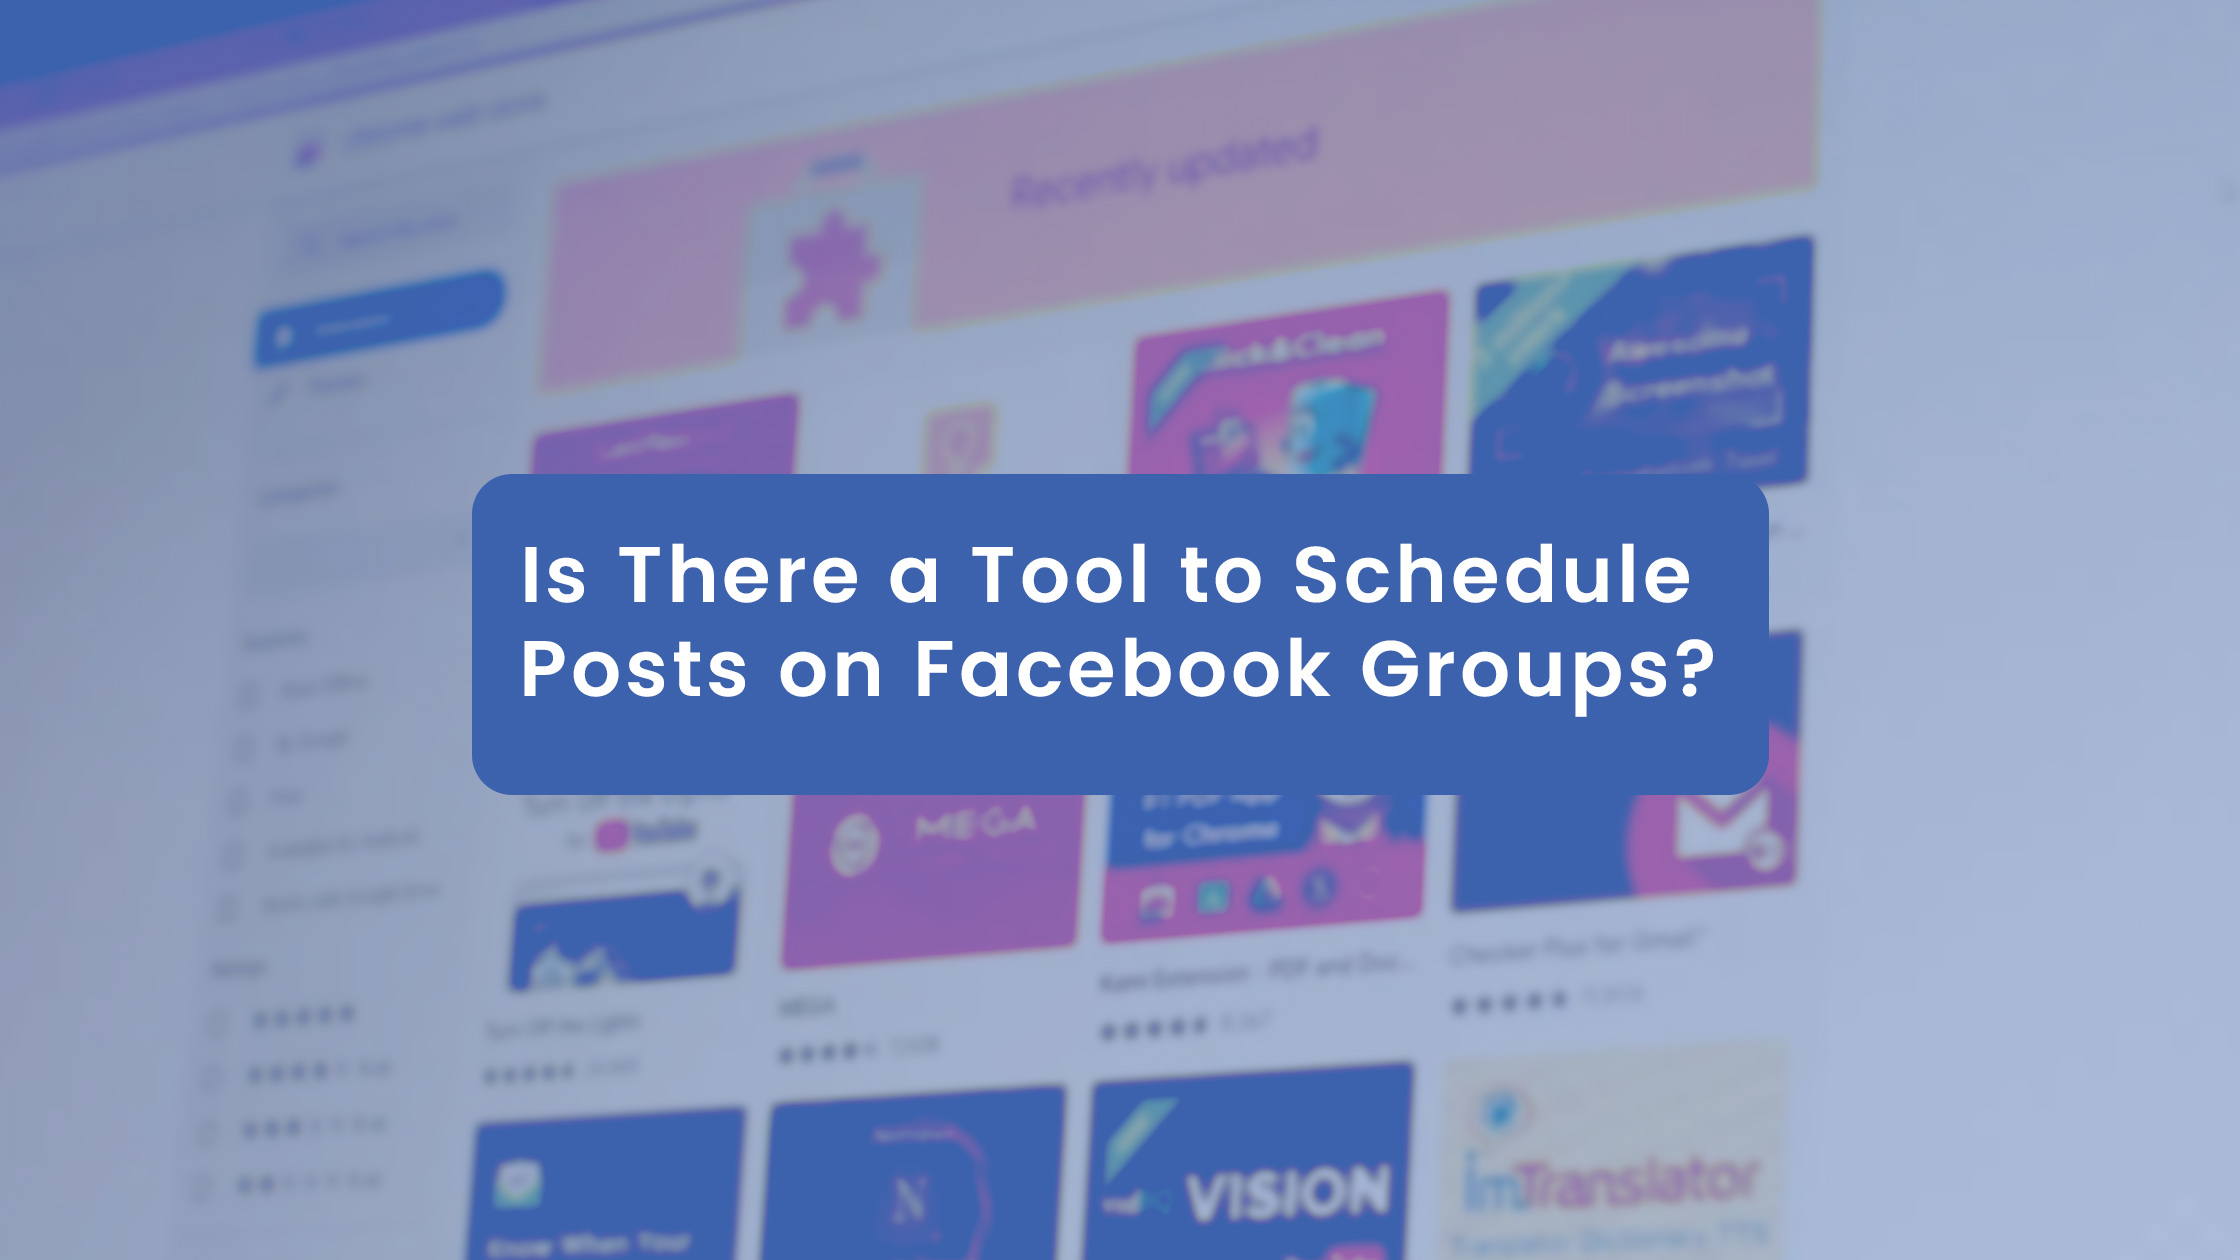 Is There a Tool to Schedule Posts on Facebook Groups?